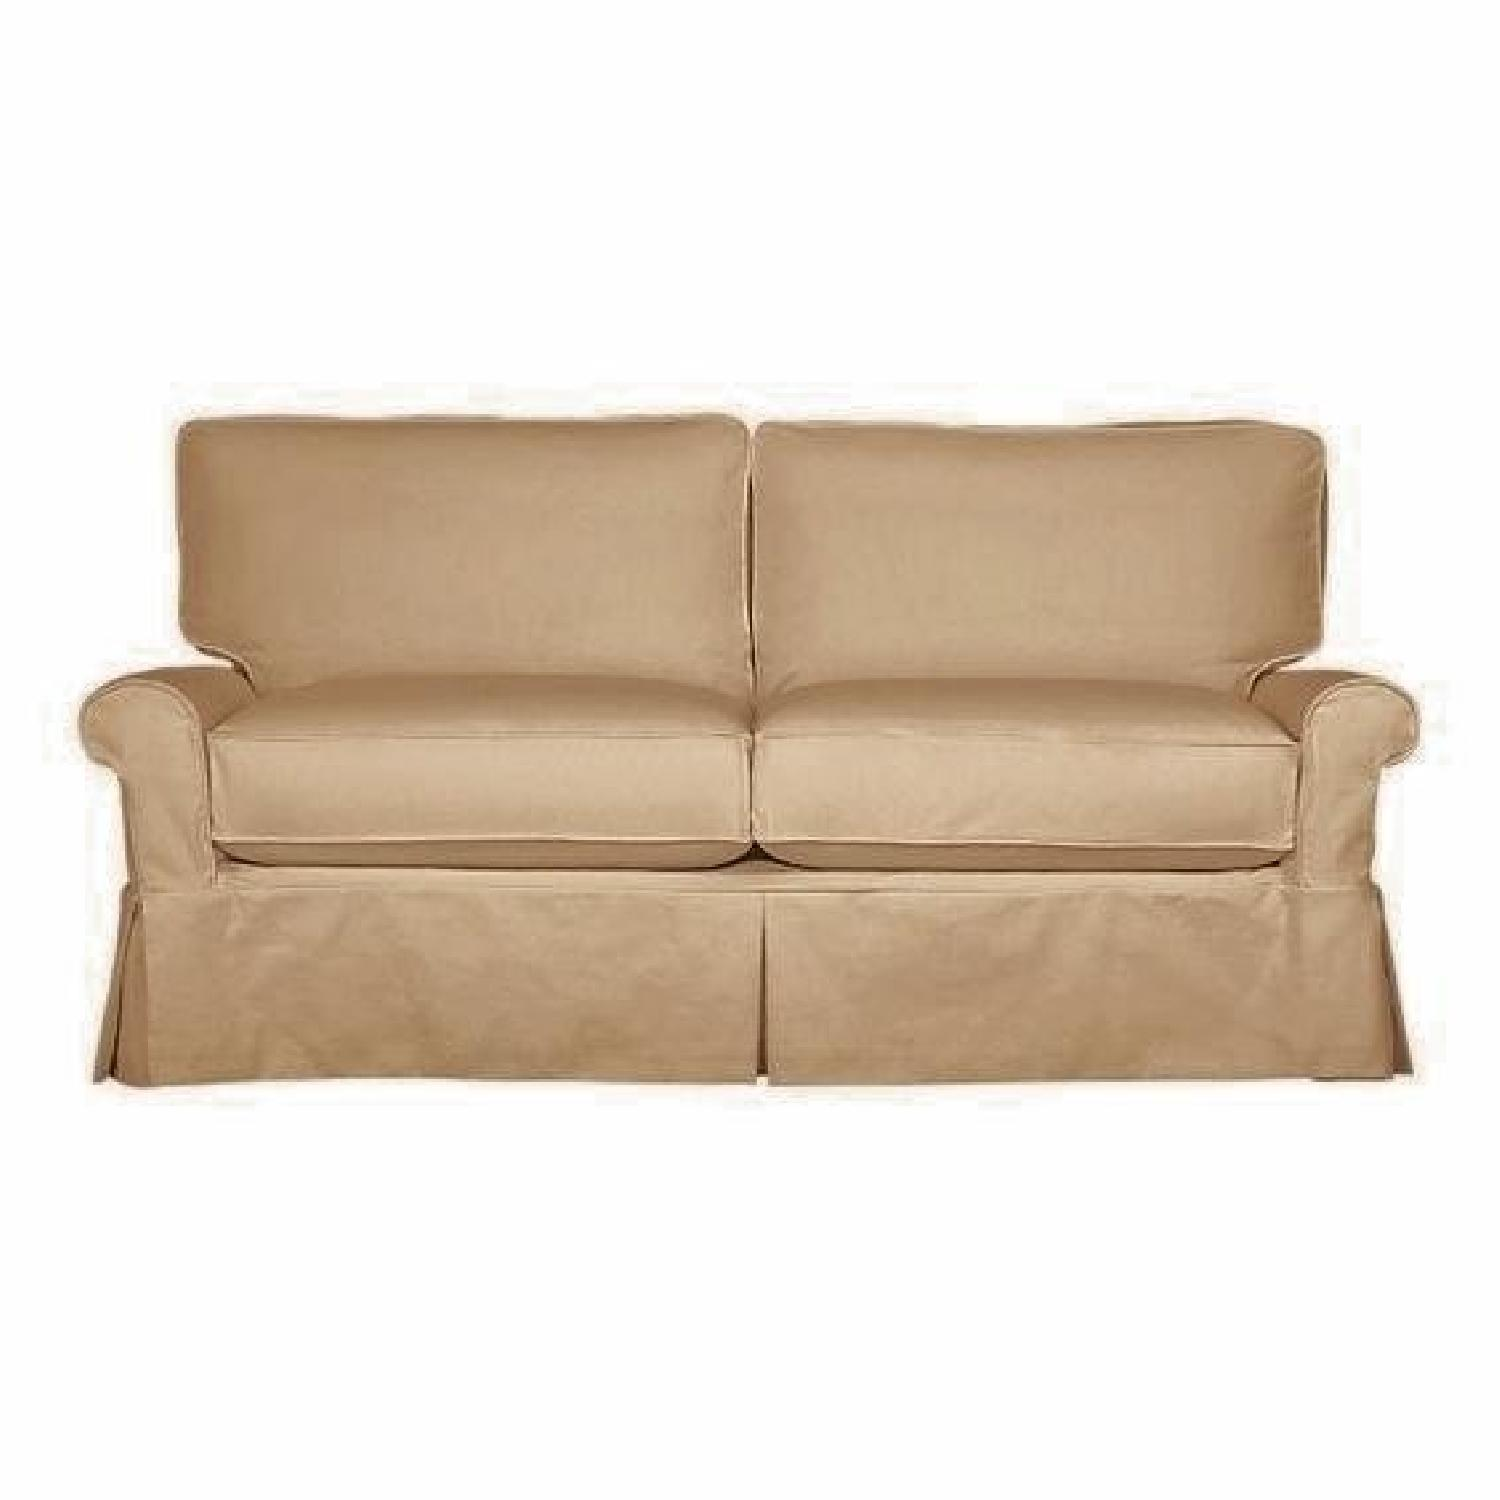 Crate & Barrel Tan Sleeper Sofa